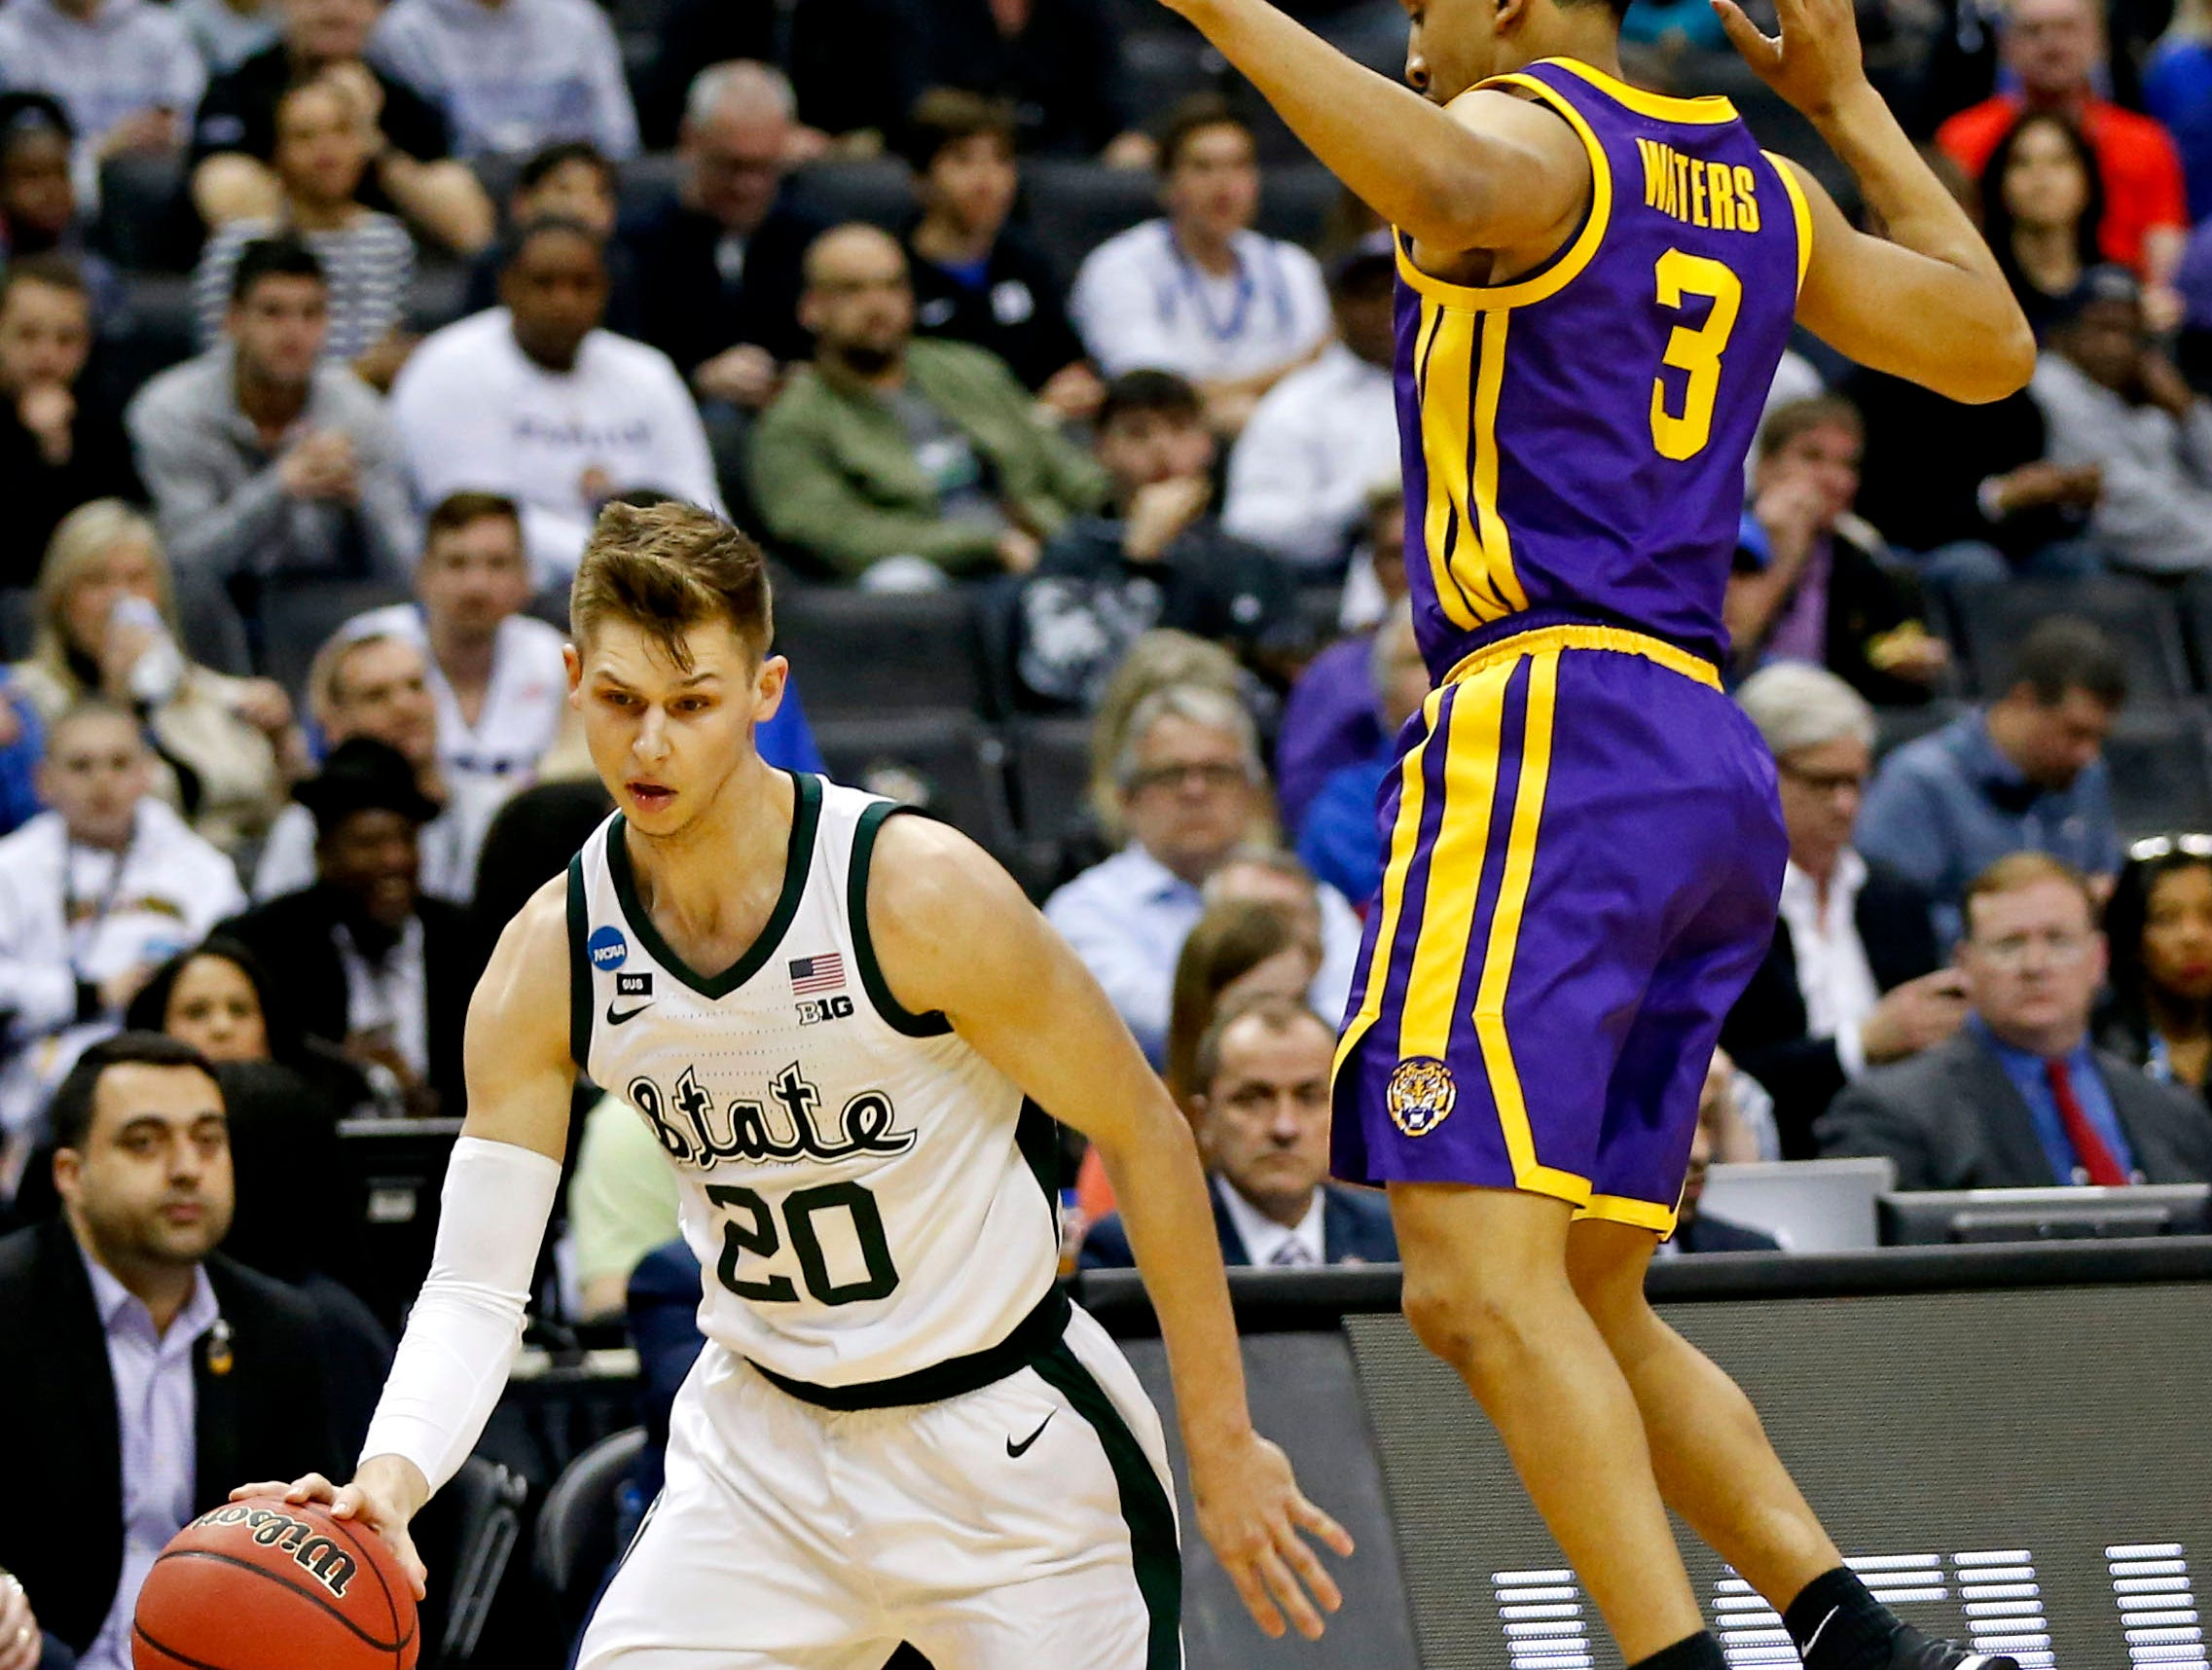 Mar 29, 2019; Washington, DC, USA; Michigan State Spartans guard Matt McQuaid (20) handles the ball against LSU Tigers guard Tremont Waters (3) during the first half in the semifinals of the east regional of the 2019 NCAA Tournament at Capital One Arena. Mandatory Credit: Amber Searls-USA TODAY Sports